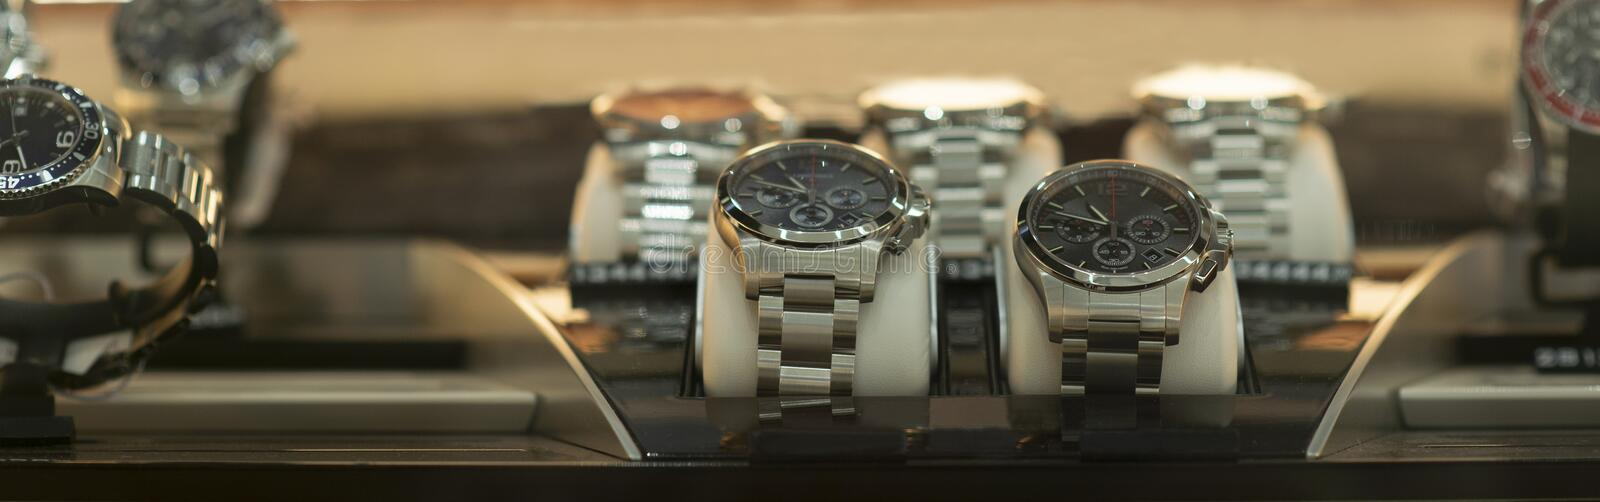 Luxury men`s watches at the store. Luxury watches in a store royalty free stock photos